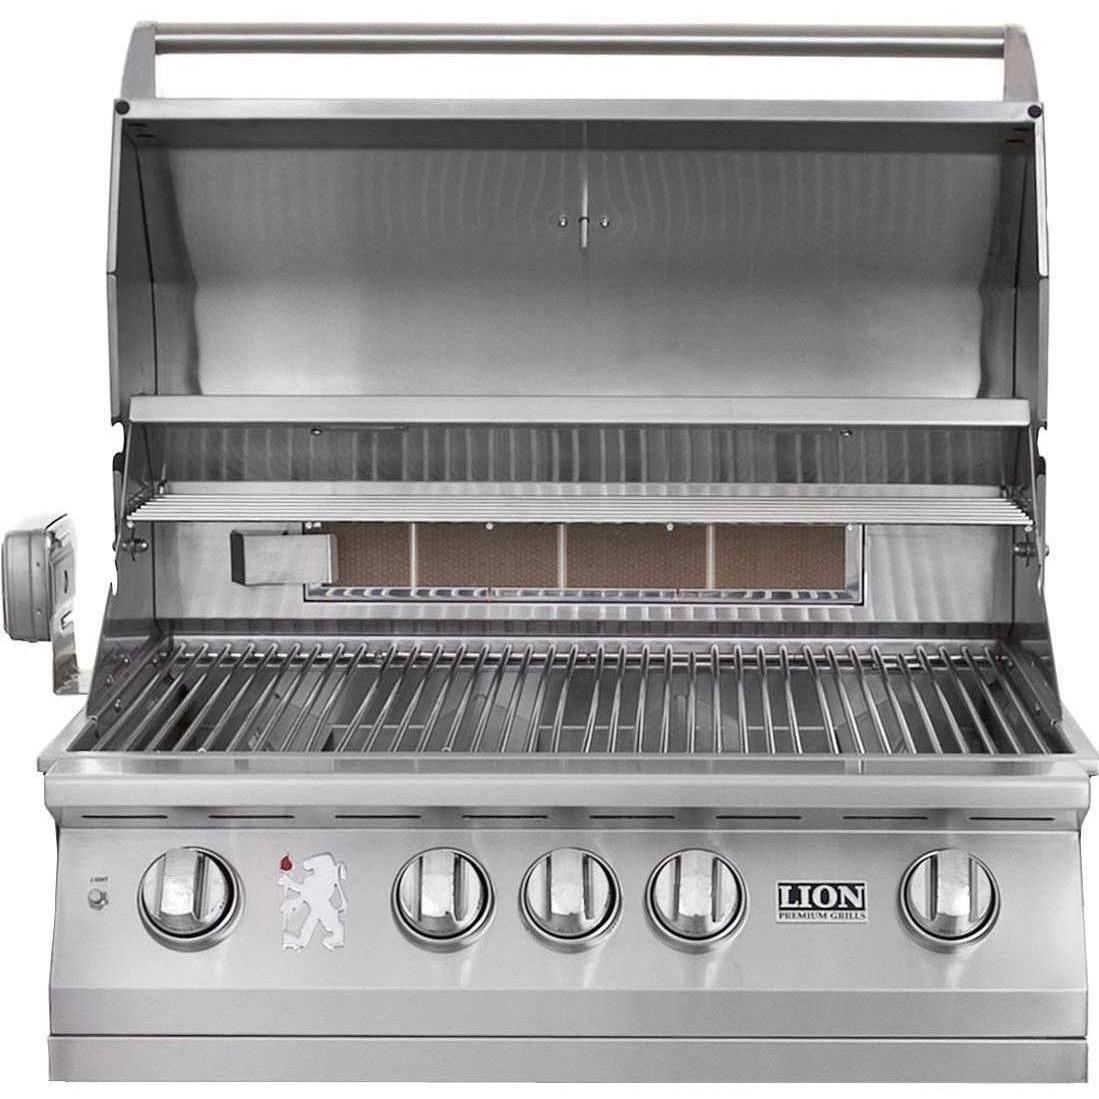 lion 32 inch built in gas grill l75000 stainless steel extreme